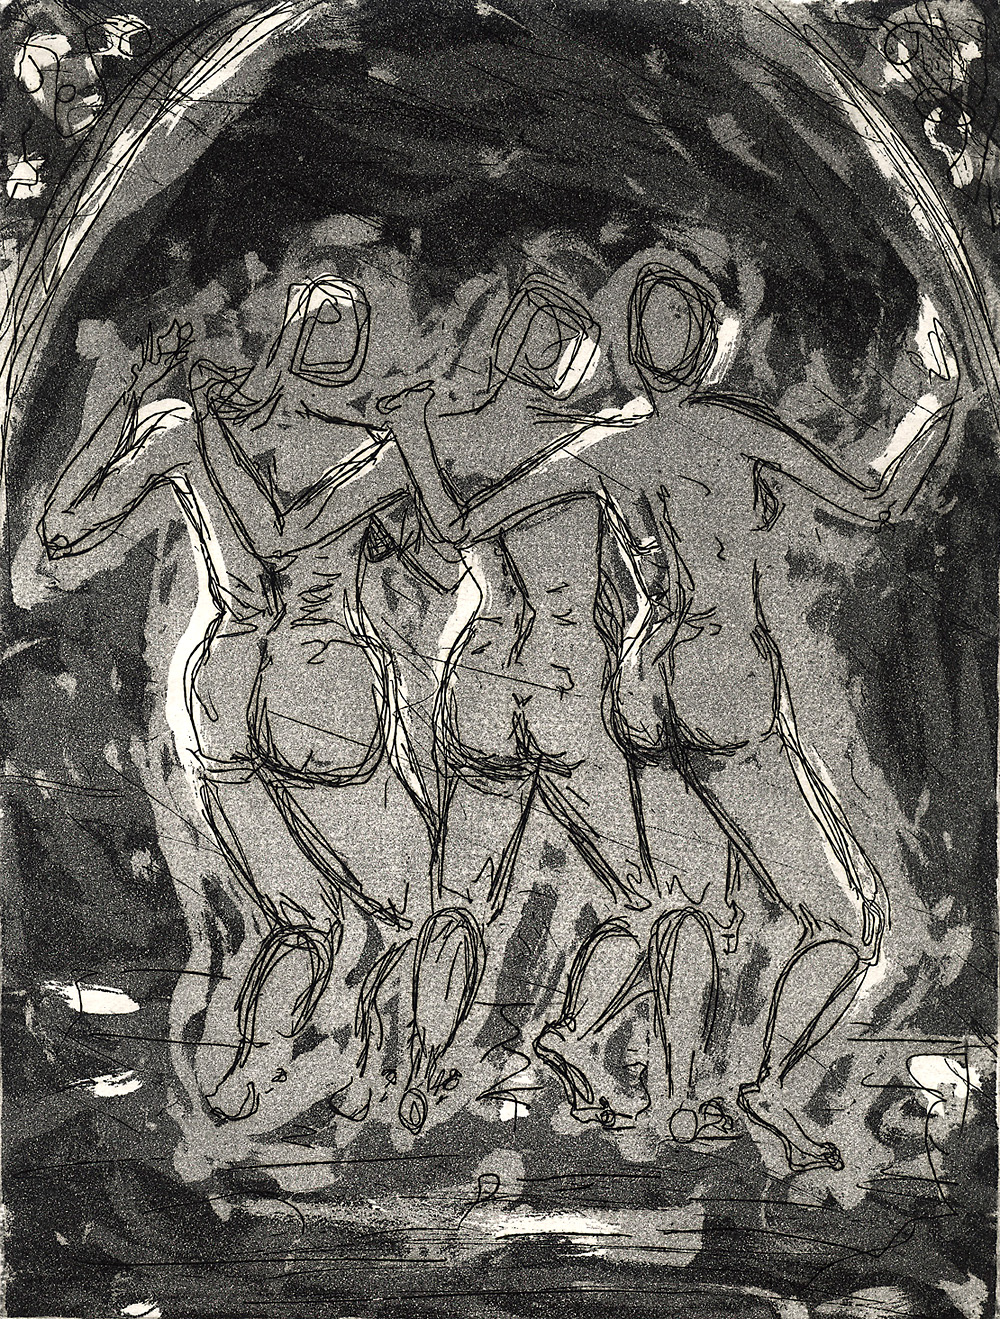 Indira-Cesarine-Three-Graces-Intaglio-Ink-on-Rag-Paper-1992-lr2.jpg